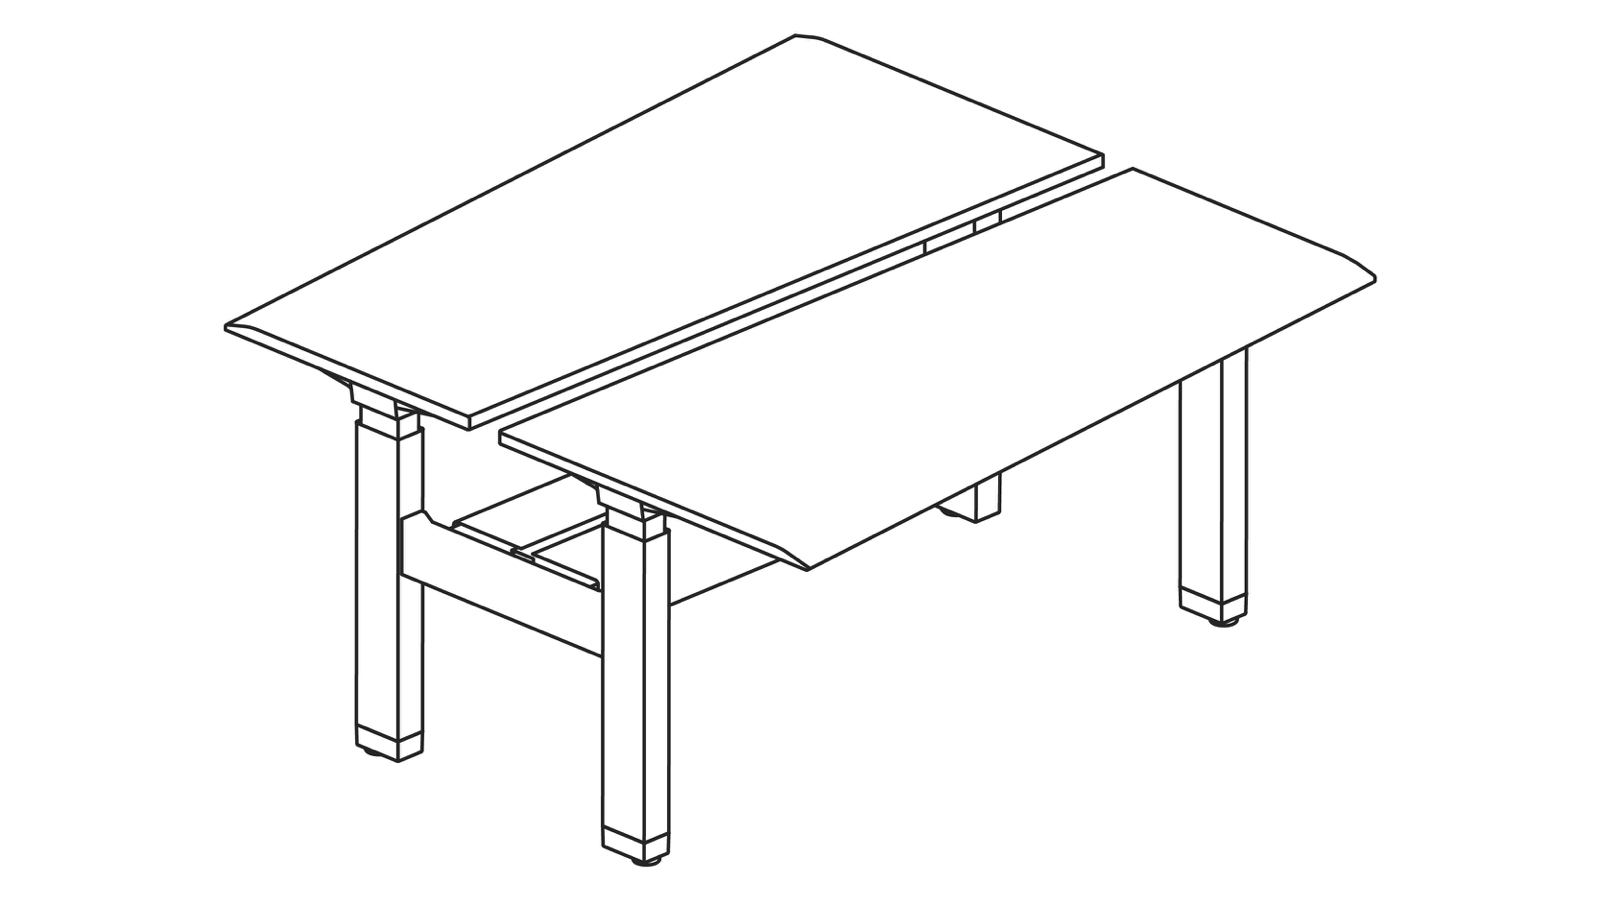 A line drawing of a Renew Link standing desk system in a back-to-back trapezoidal bench configuration.